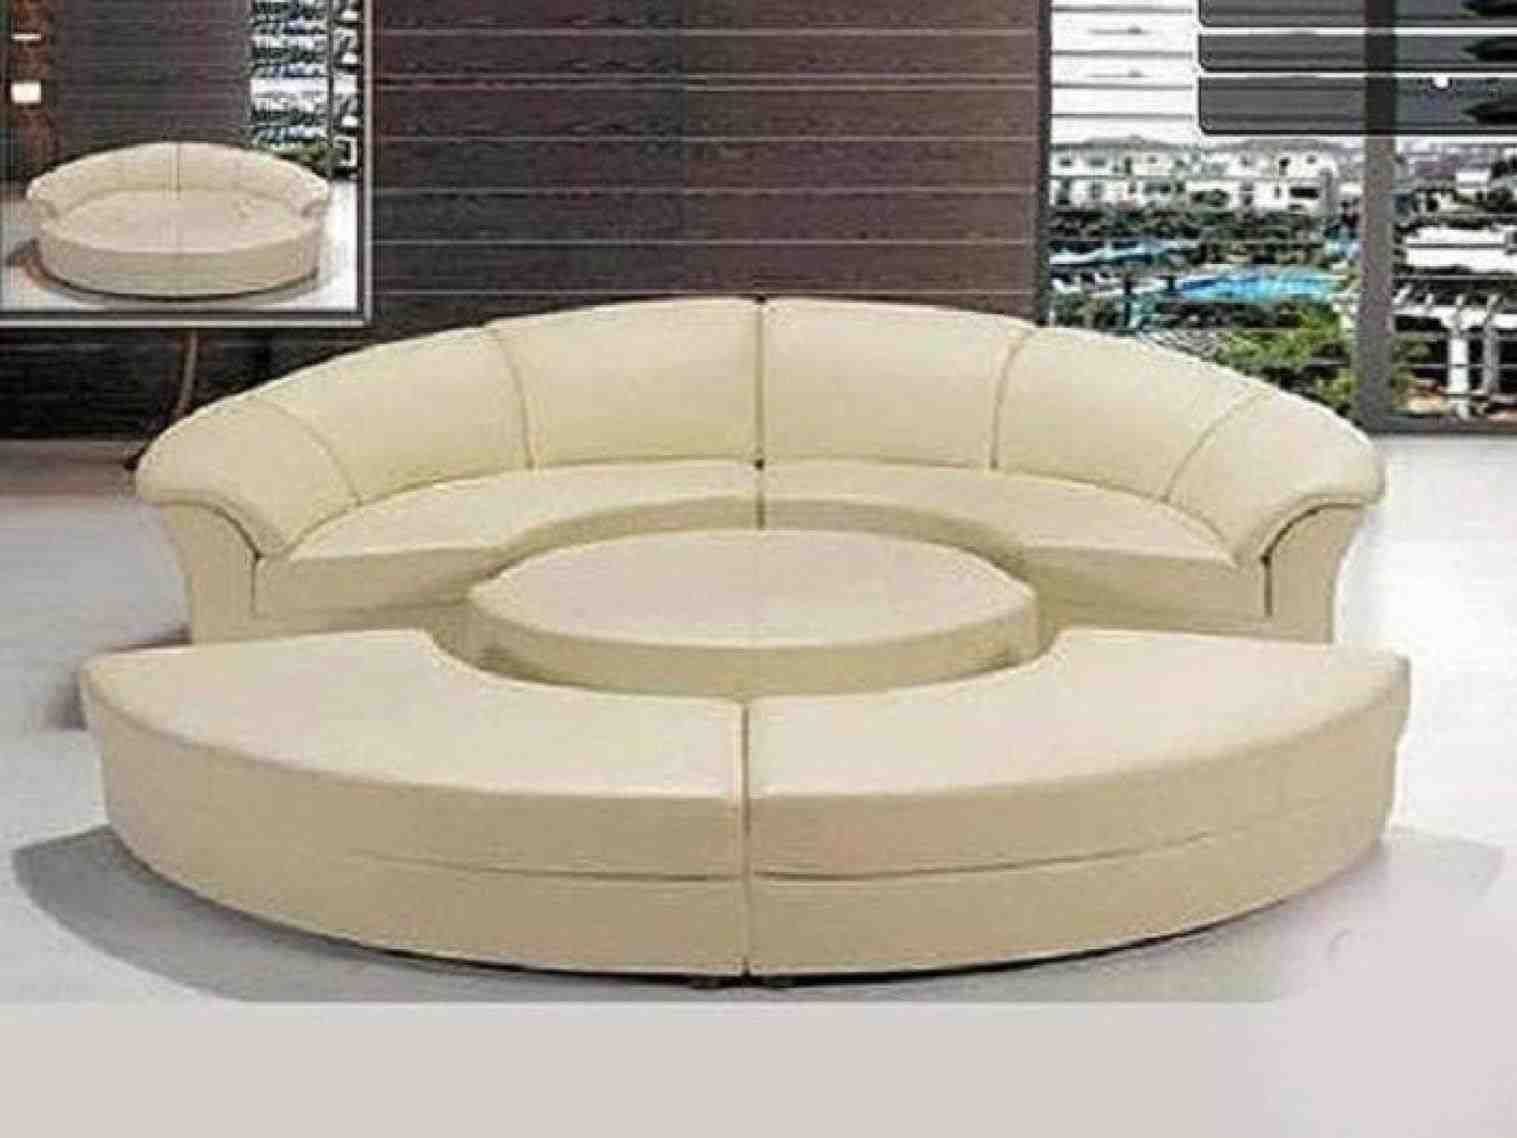 Cheap Loveseats And Sofas Round Sofa Round Couch Sofa Design